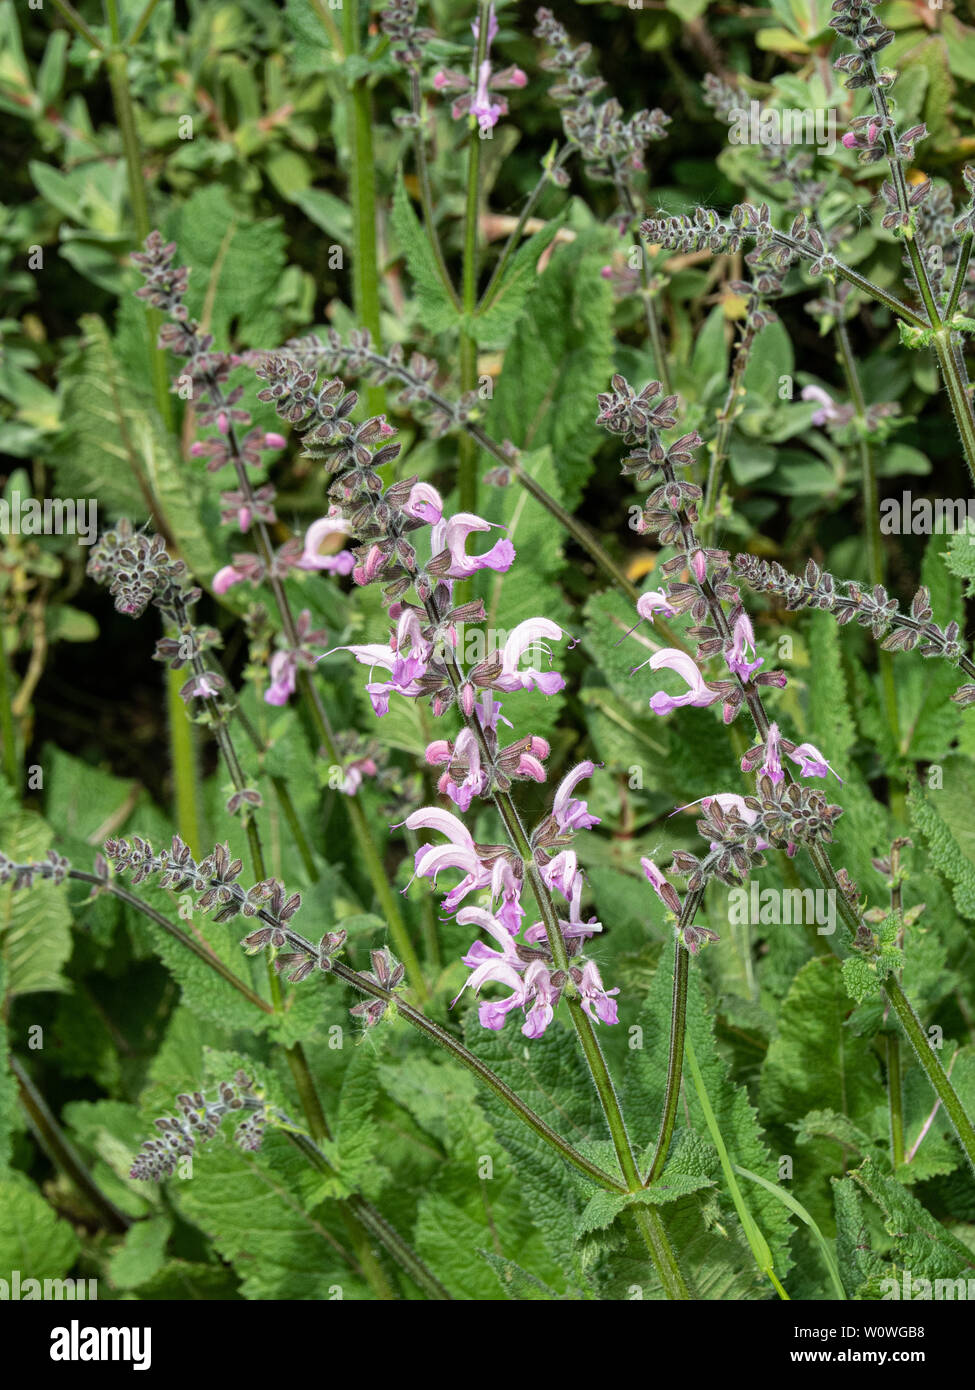 A pink flowering spike of Salvia pratensis Pink Delight - Stock Image